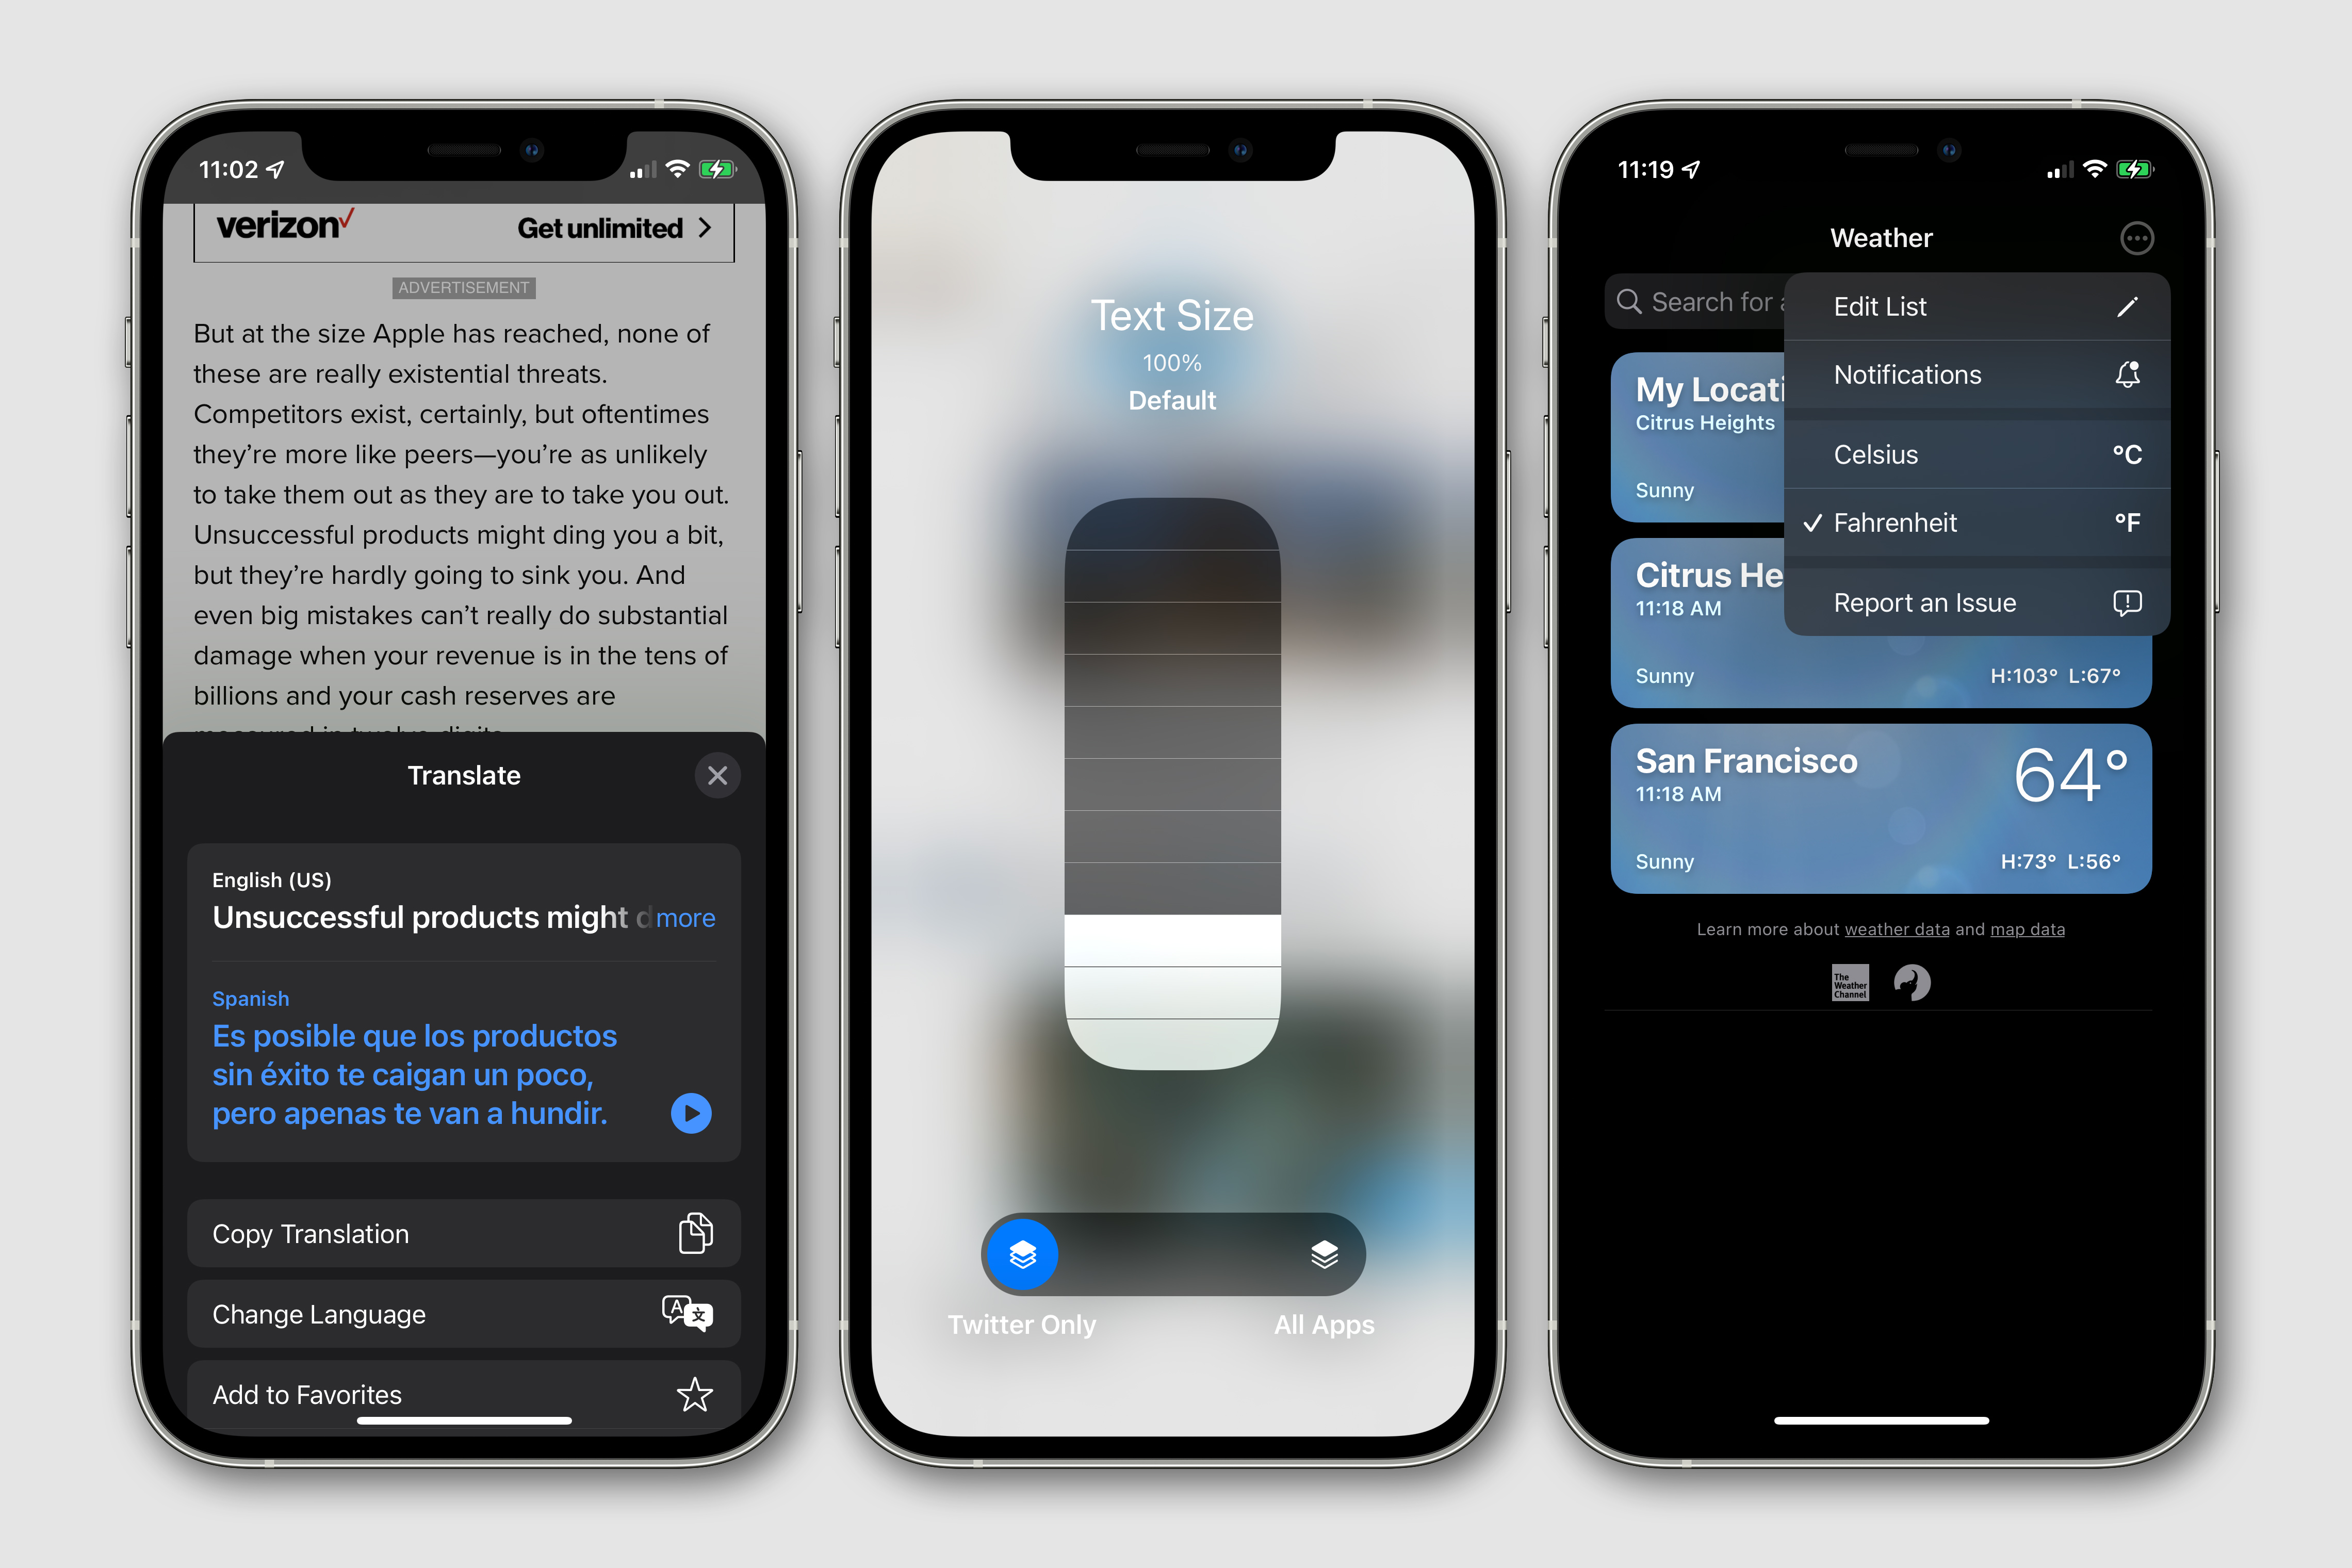 iOS 15: 10 hidden features you need to know   Macworld